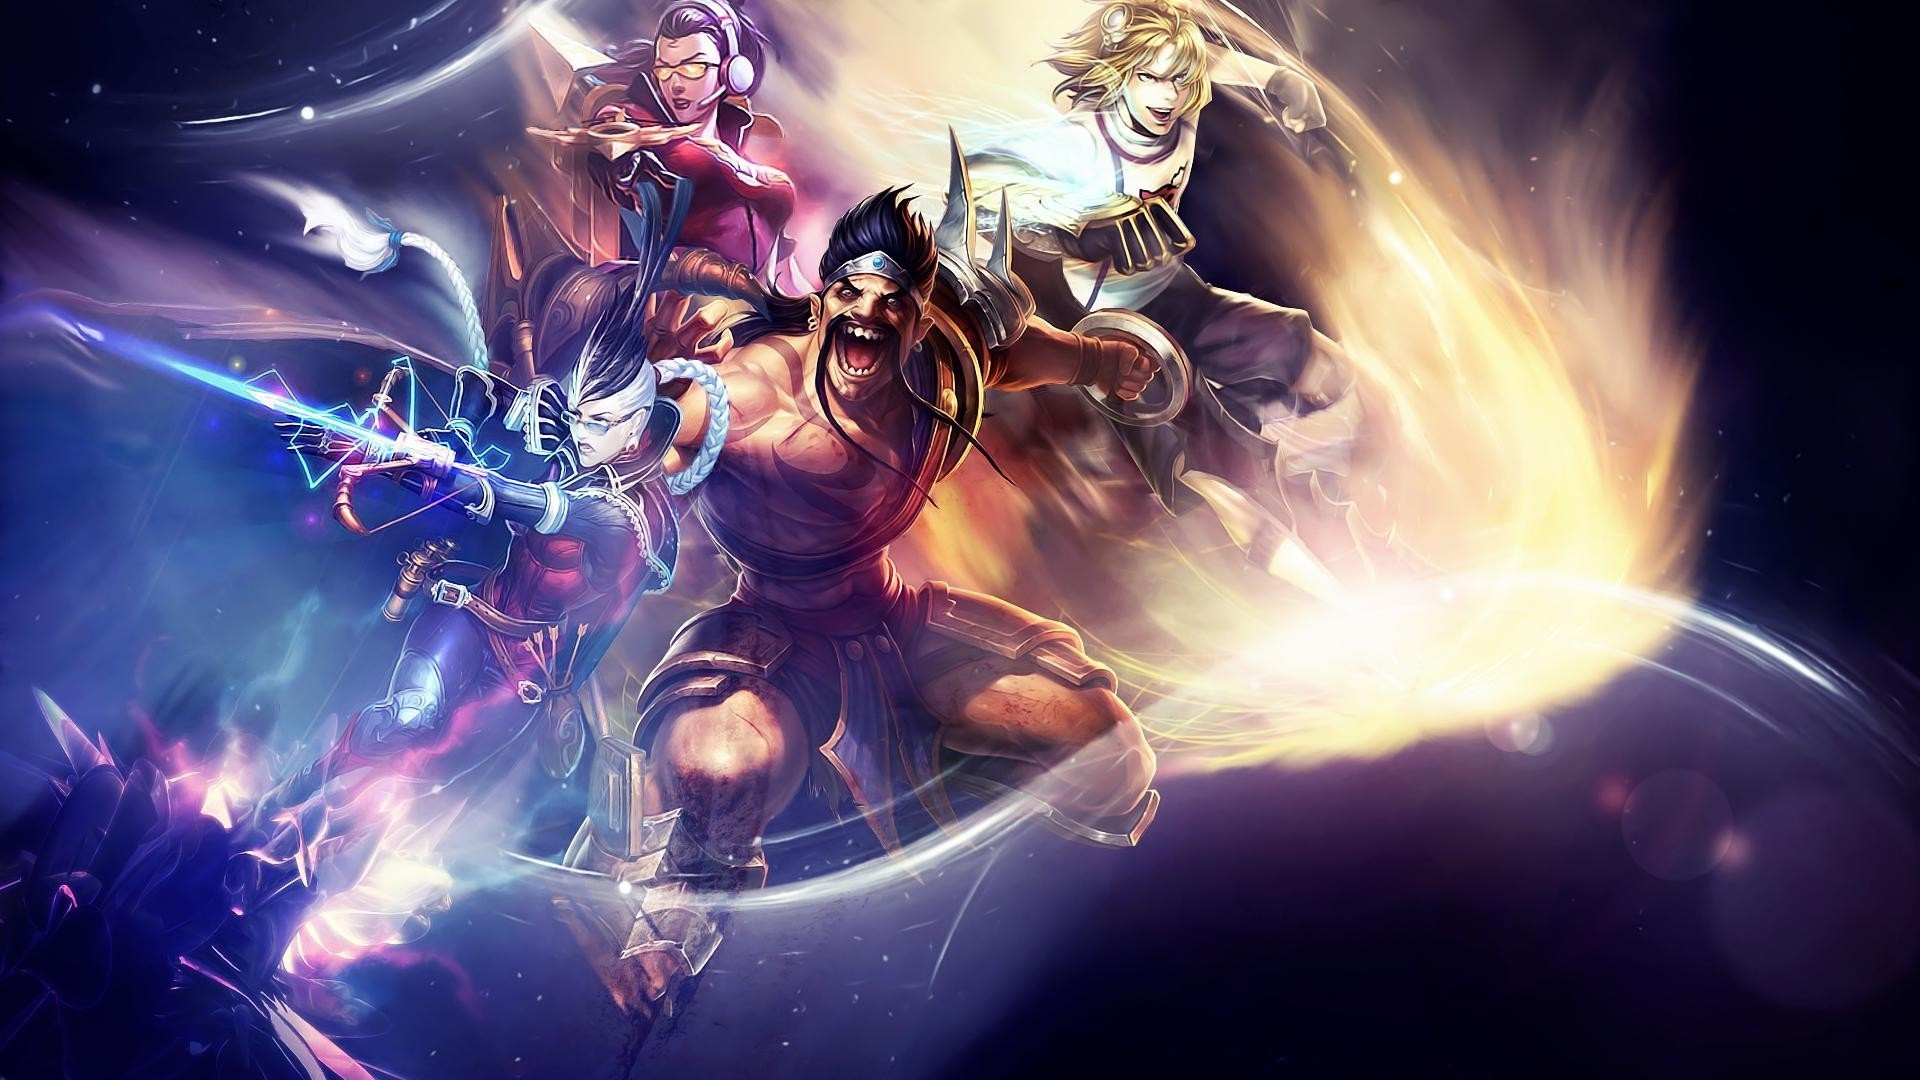 1920x1080 League Of Legends, Draven, Vayne, Ezreal Wallpapers HD / Desktop and Mobile  Backgrounds